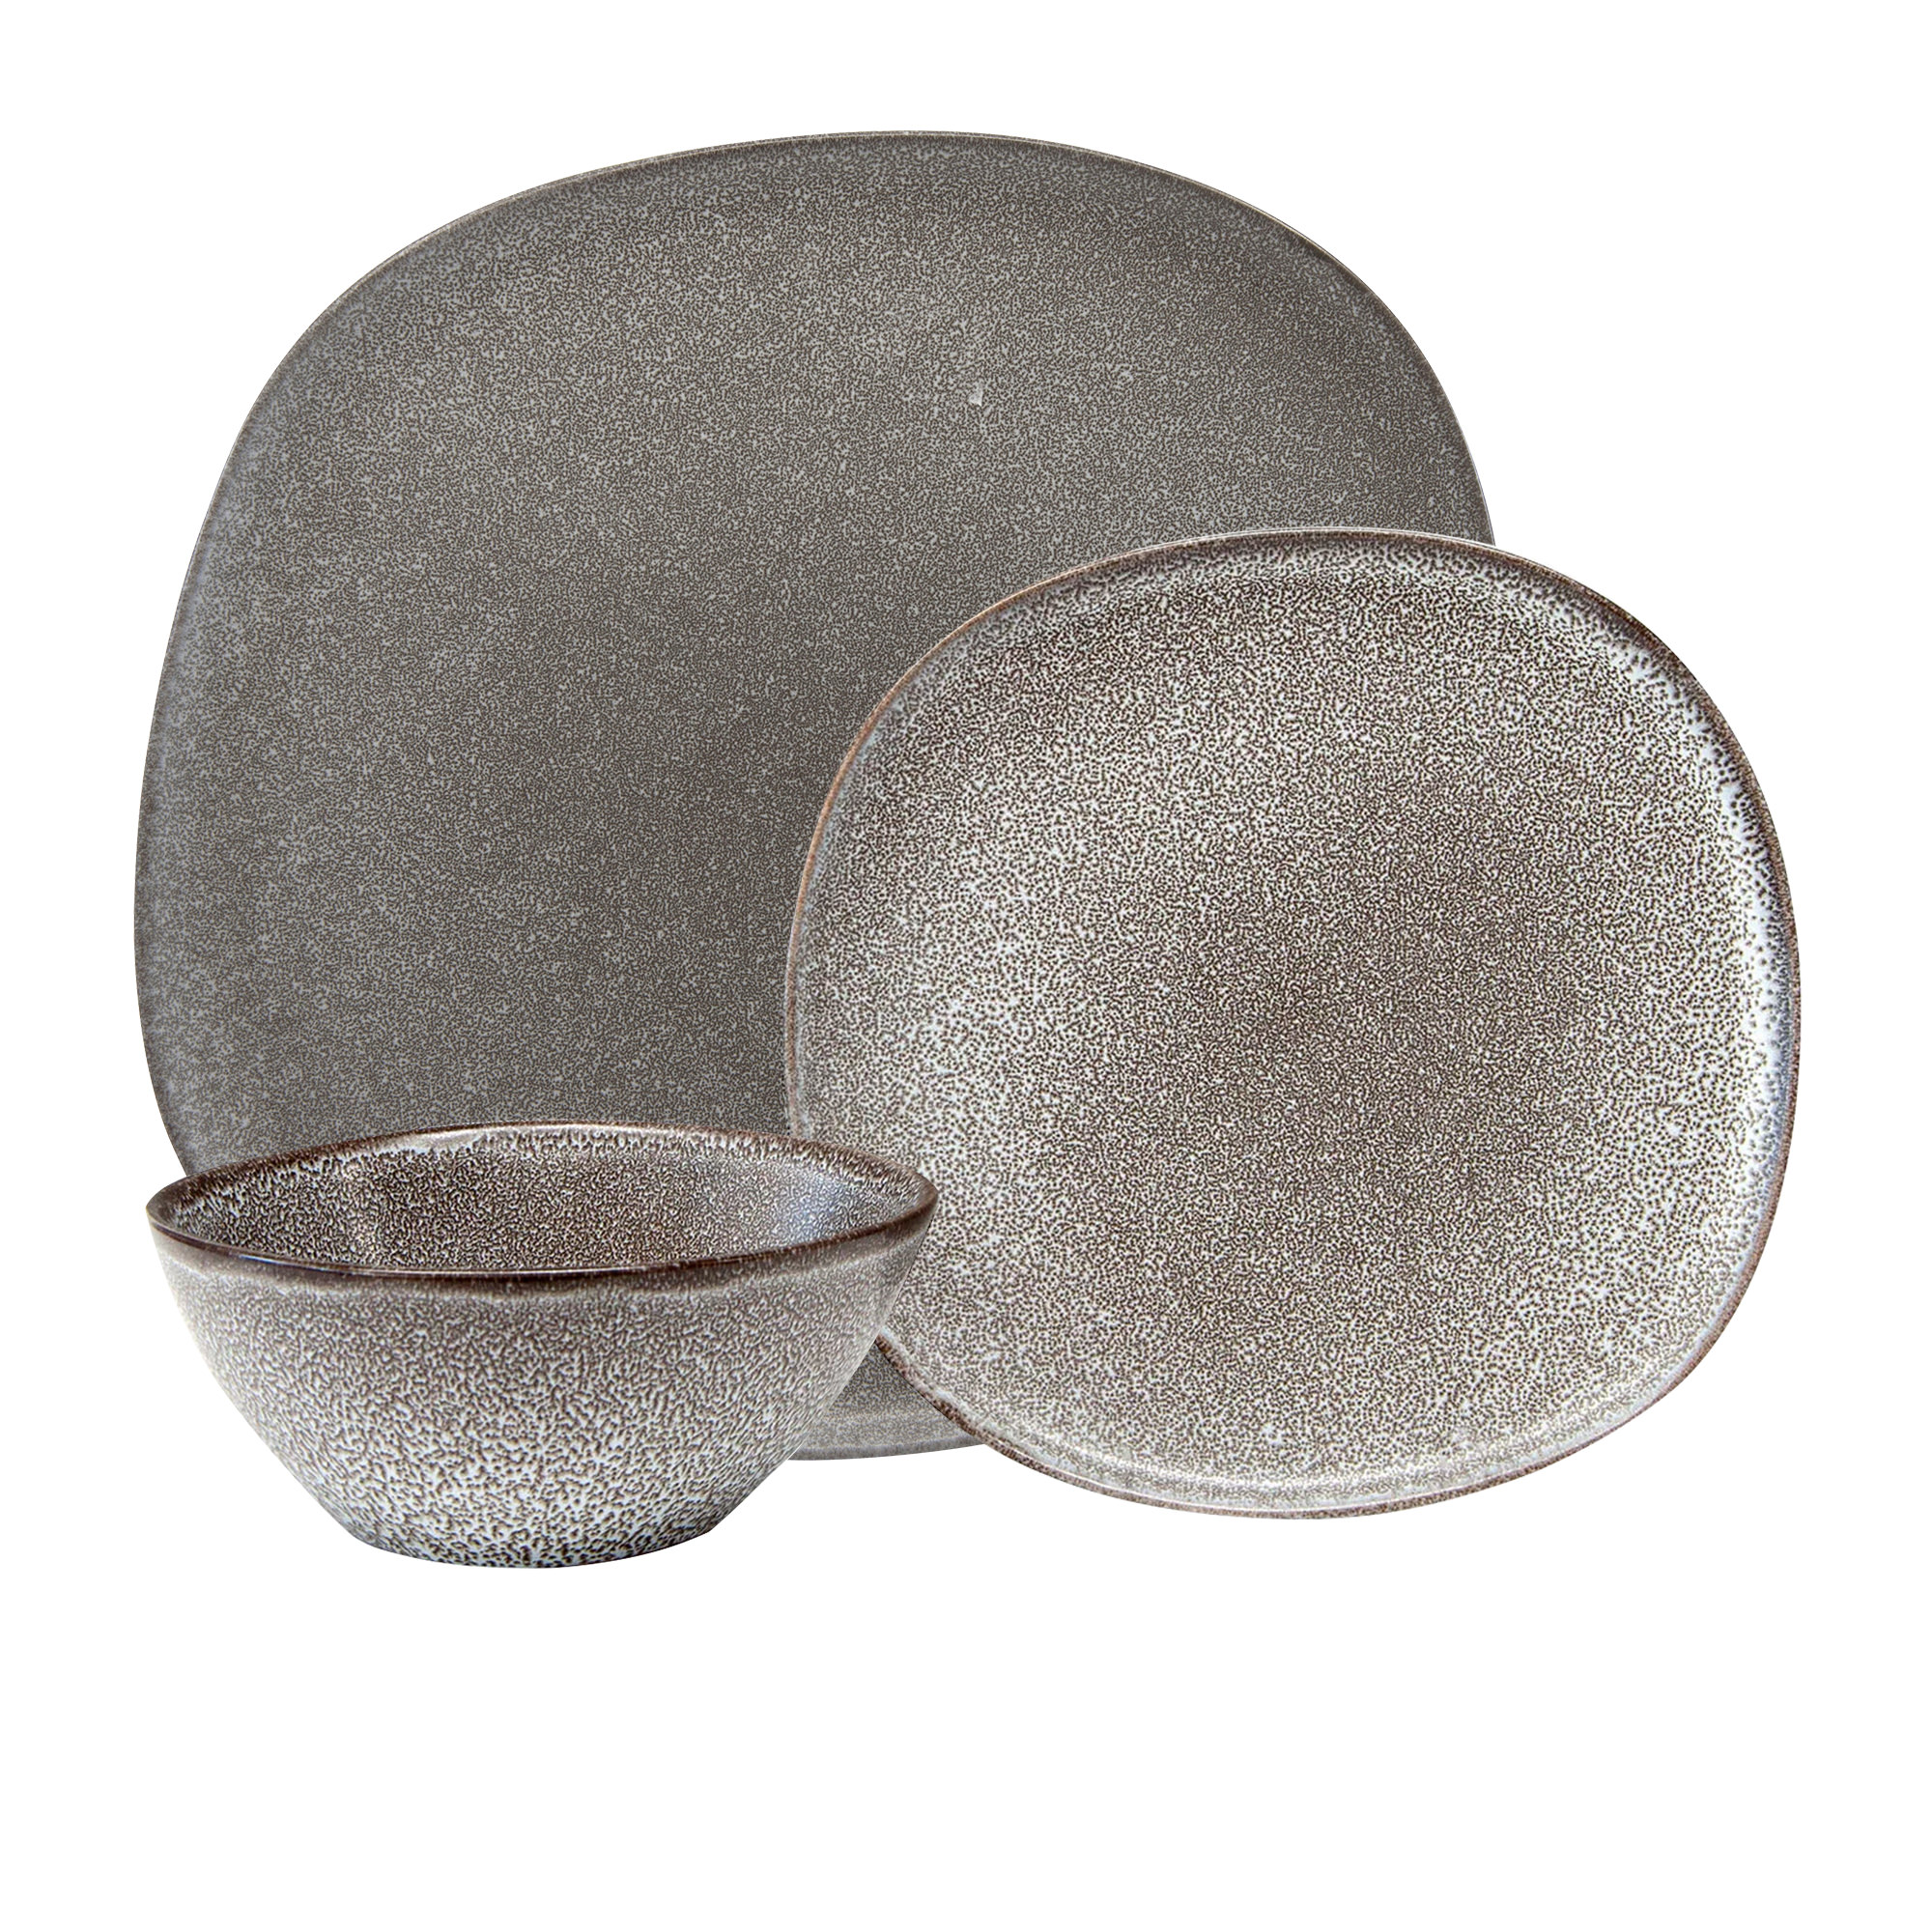 Salt & Pepper Arch 12pc Dinner Set Charcoal